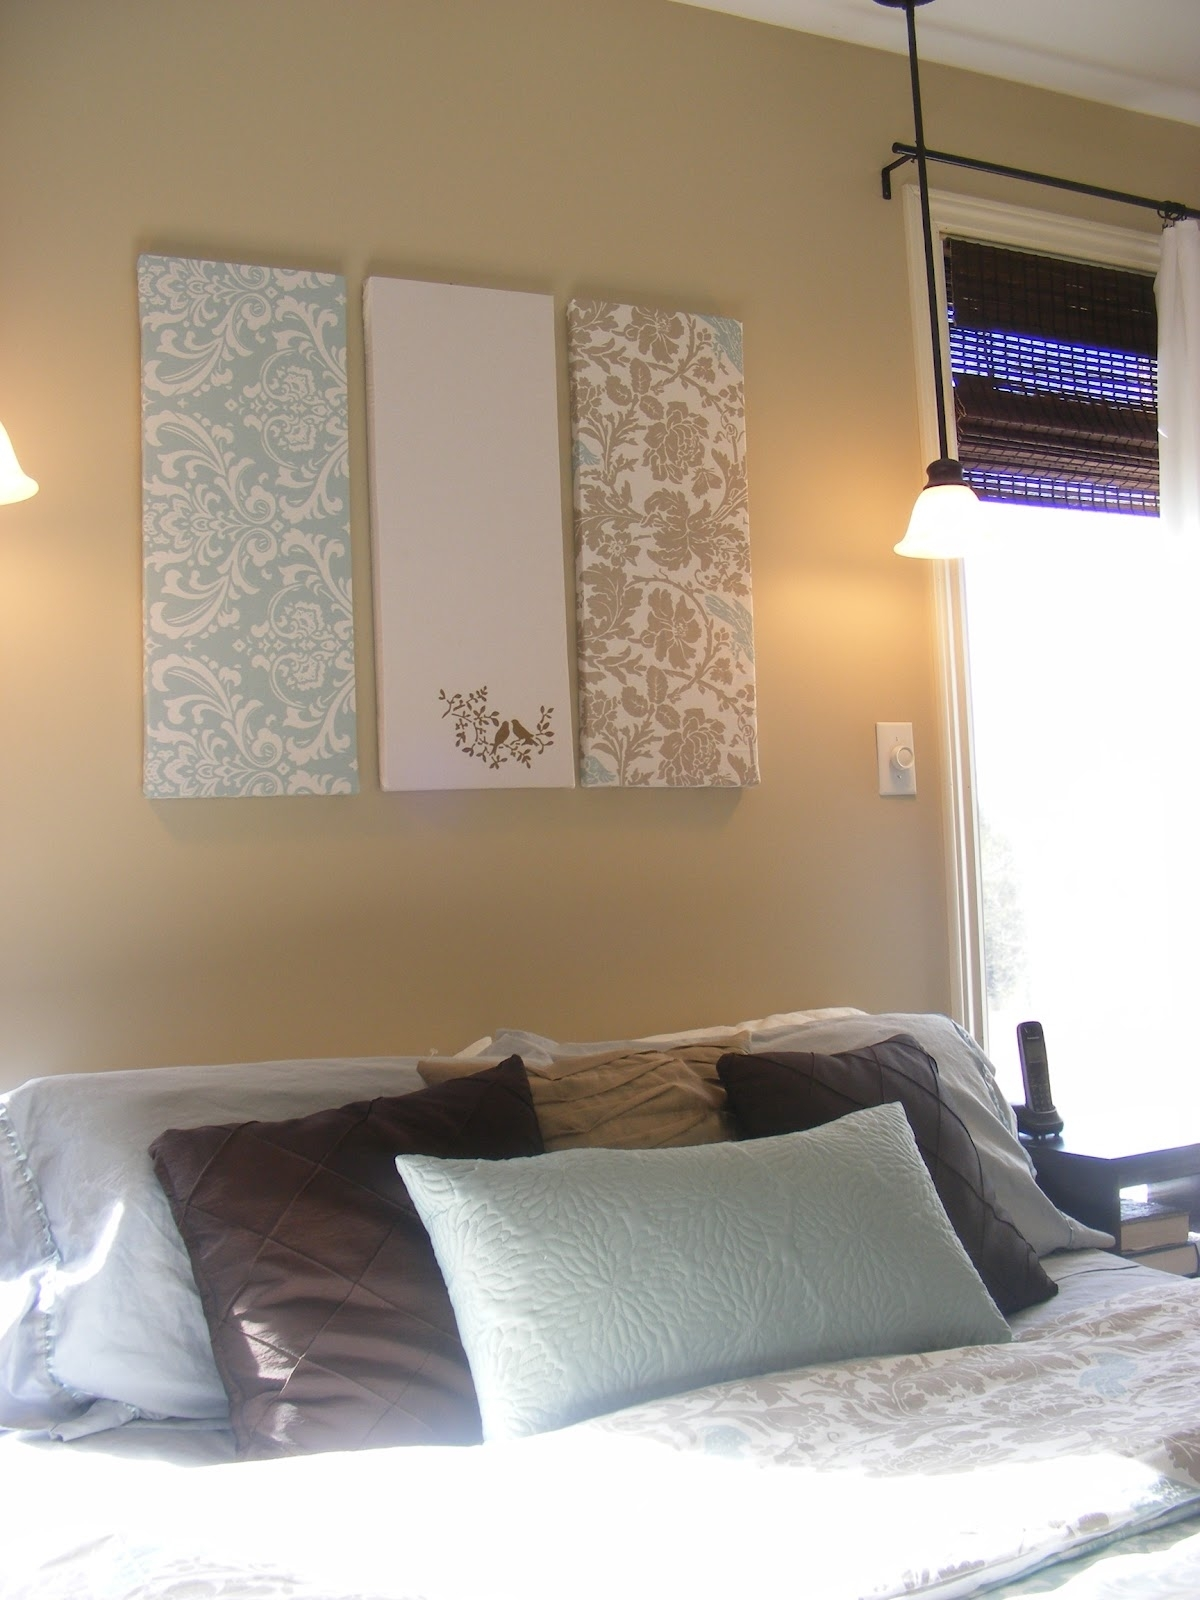 The Complete Guide To Imperfect Homemaking: Simple, Thrifty Diy Art Throughout Recent Styrofoam And Fabric Wall Art (View 14 of 15)